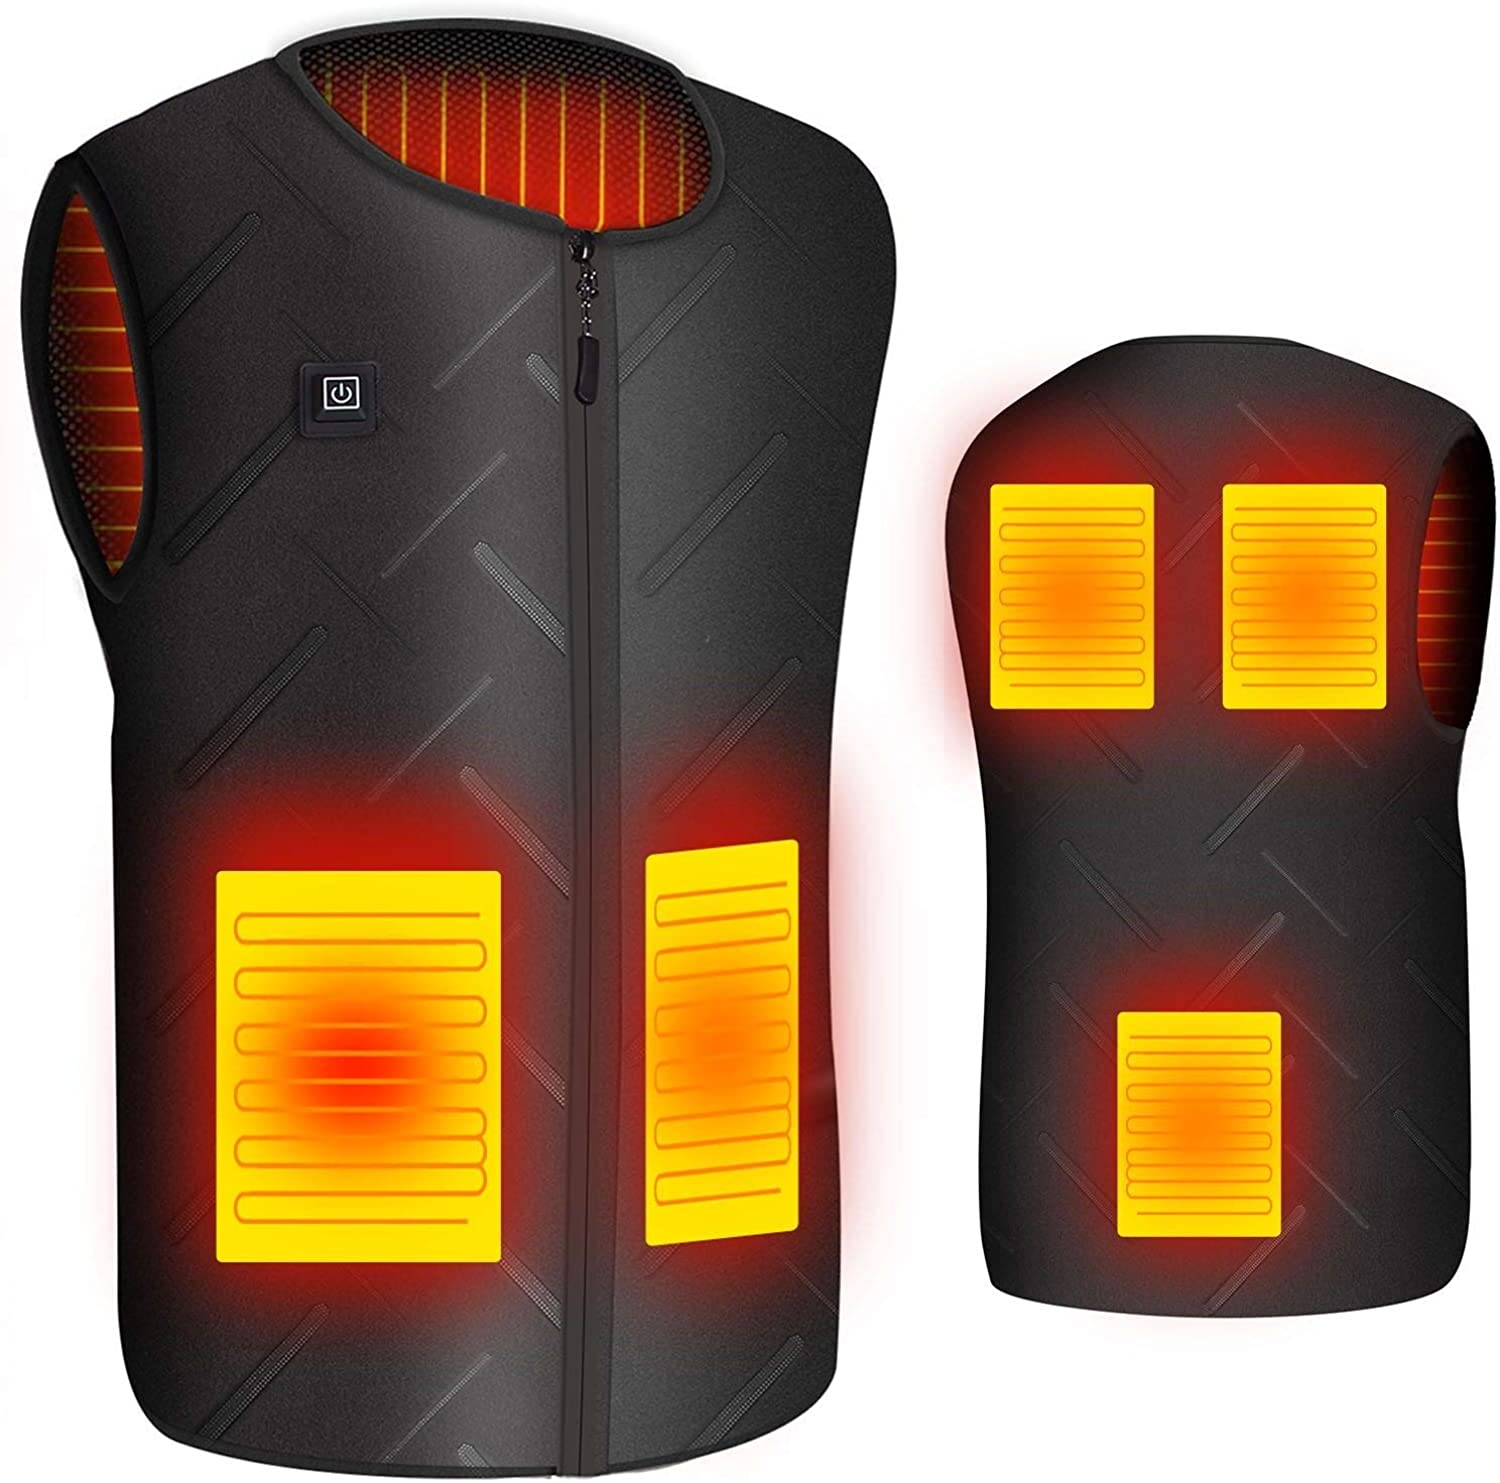 Heated Vest for Men USB Charging Heated Jacket Washable Electric Heating Coat Women Outdoor Motorcycle Riding Hunting